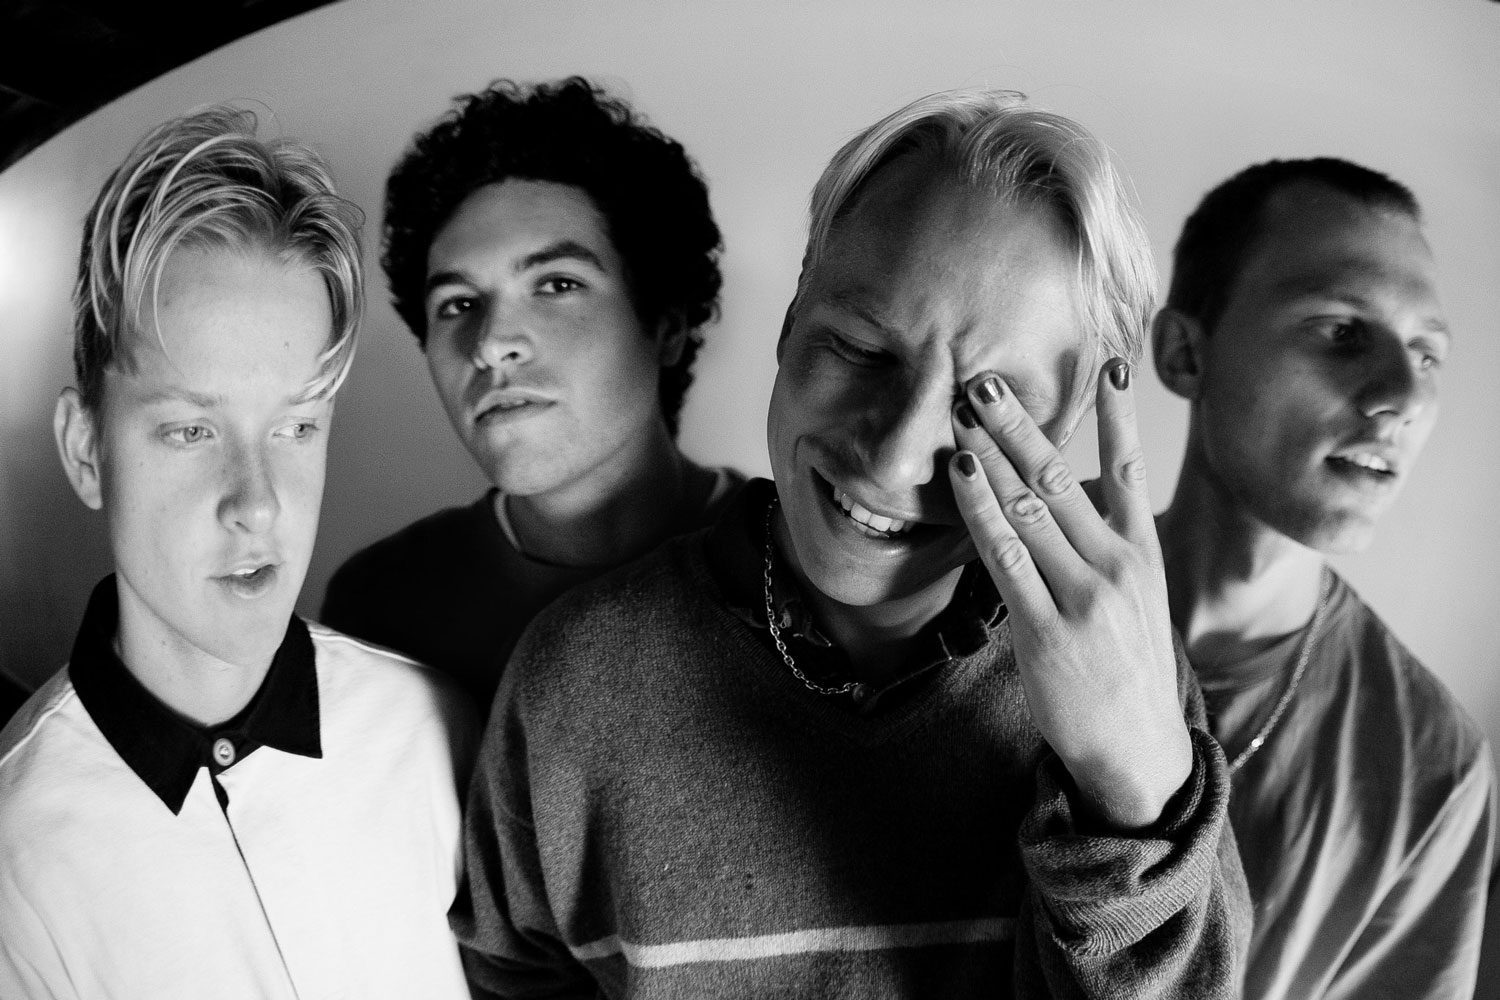 SWMRS have announced a US tour, and they're taking The Regrettes and Beach Goons with them